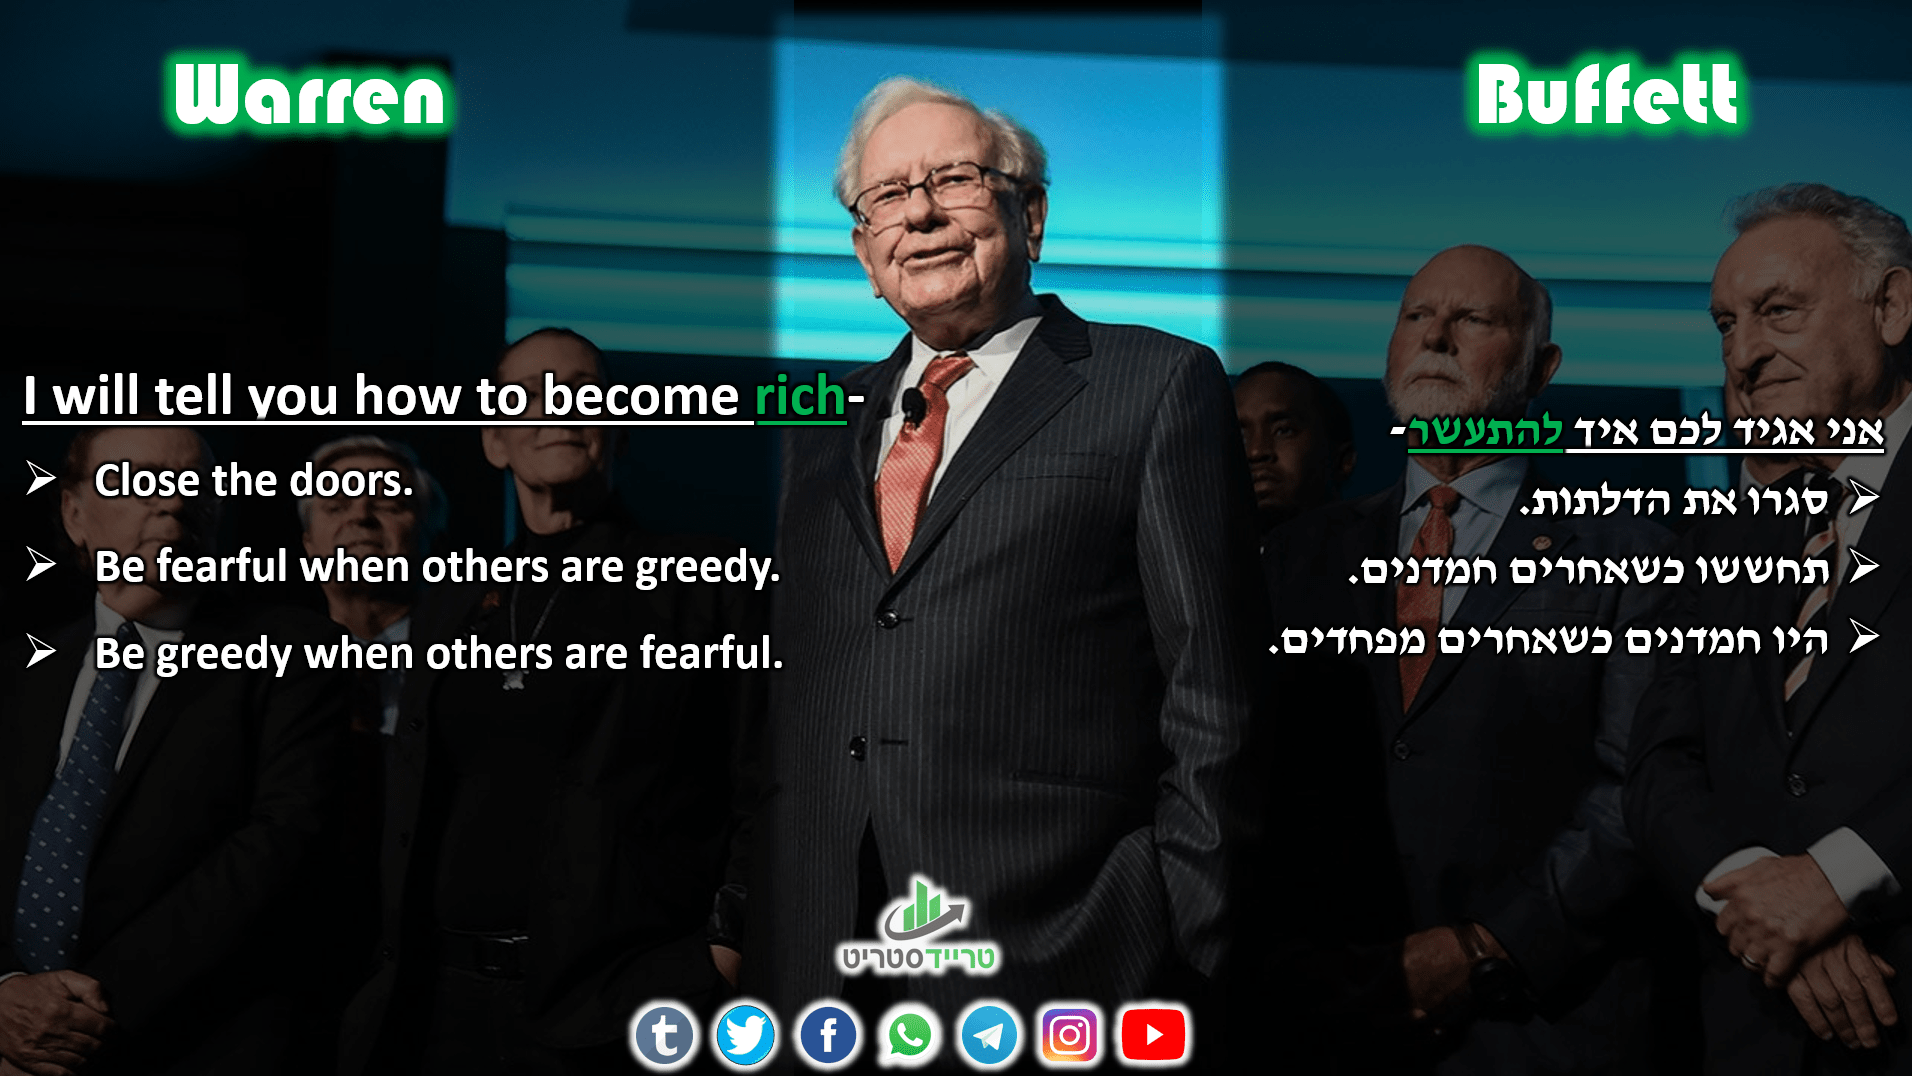 warren buffett- I will tell you how to become rich